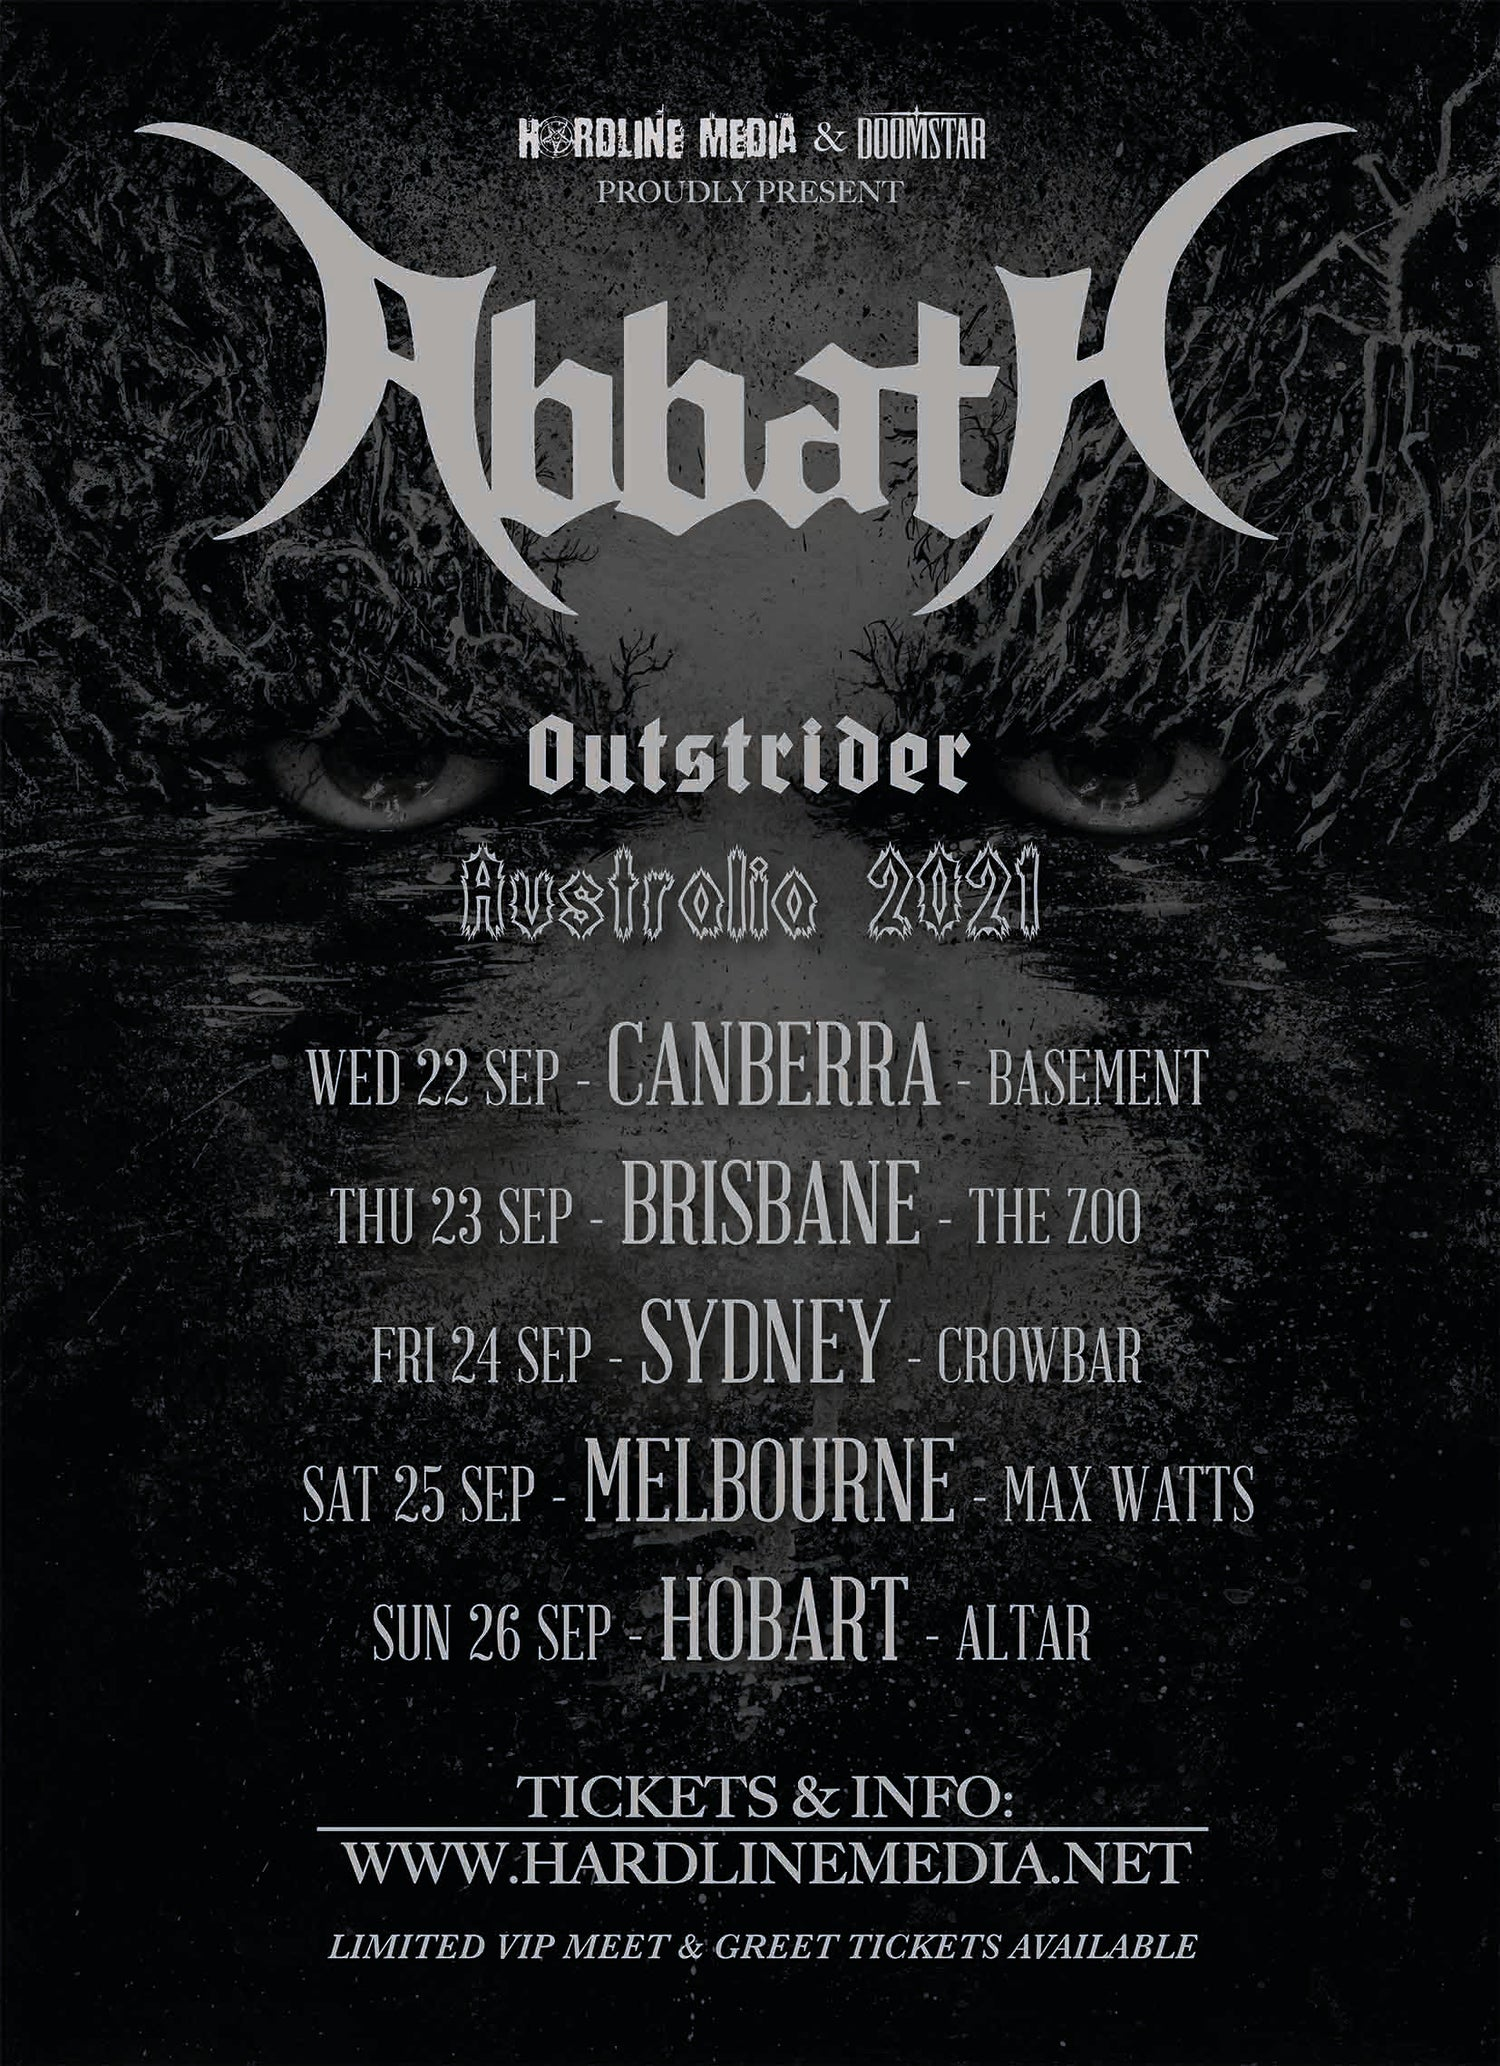 Image of VIP TICKET - ABBATH - MELBOURNE, MAX WATTS - SAT 25 SEP 2021